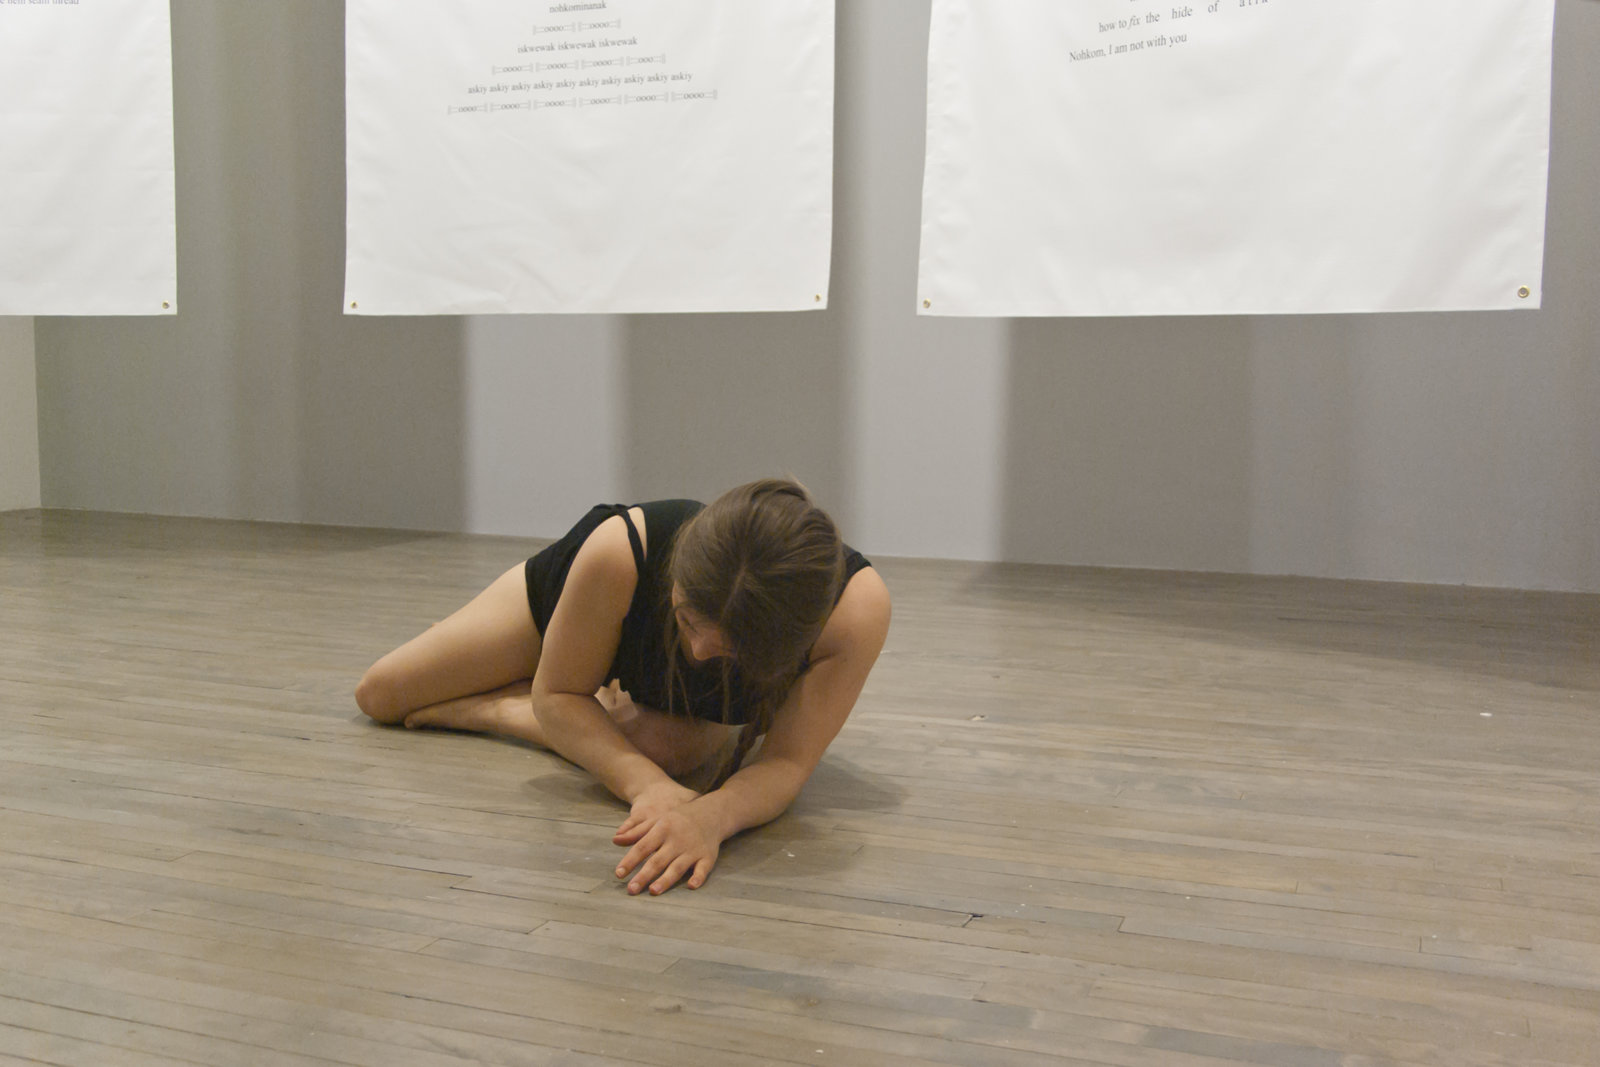 Tanya Lukin Linklater, Slow Scrape and the Harvest Sturdies, 2013–2017, 5 banners, canvas, grommets, sinew, site-specific performance. Performance documentation, A Problem So Big It Needs Other People, SBC Galleries, Montreal, Canada, 2014